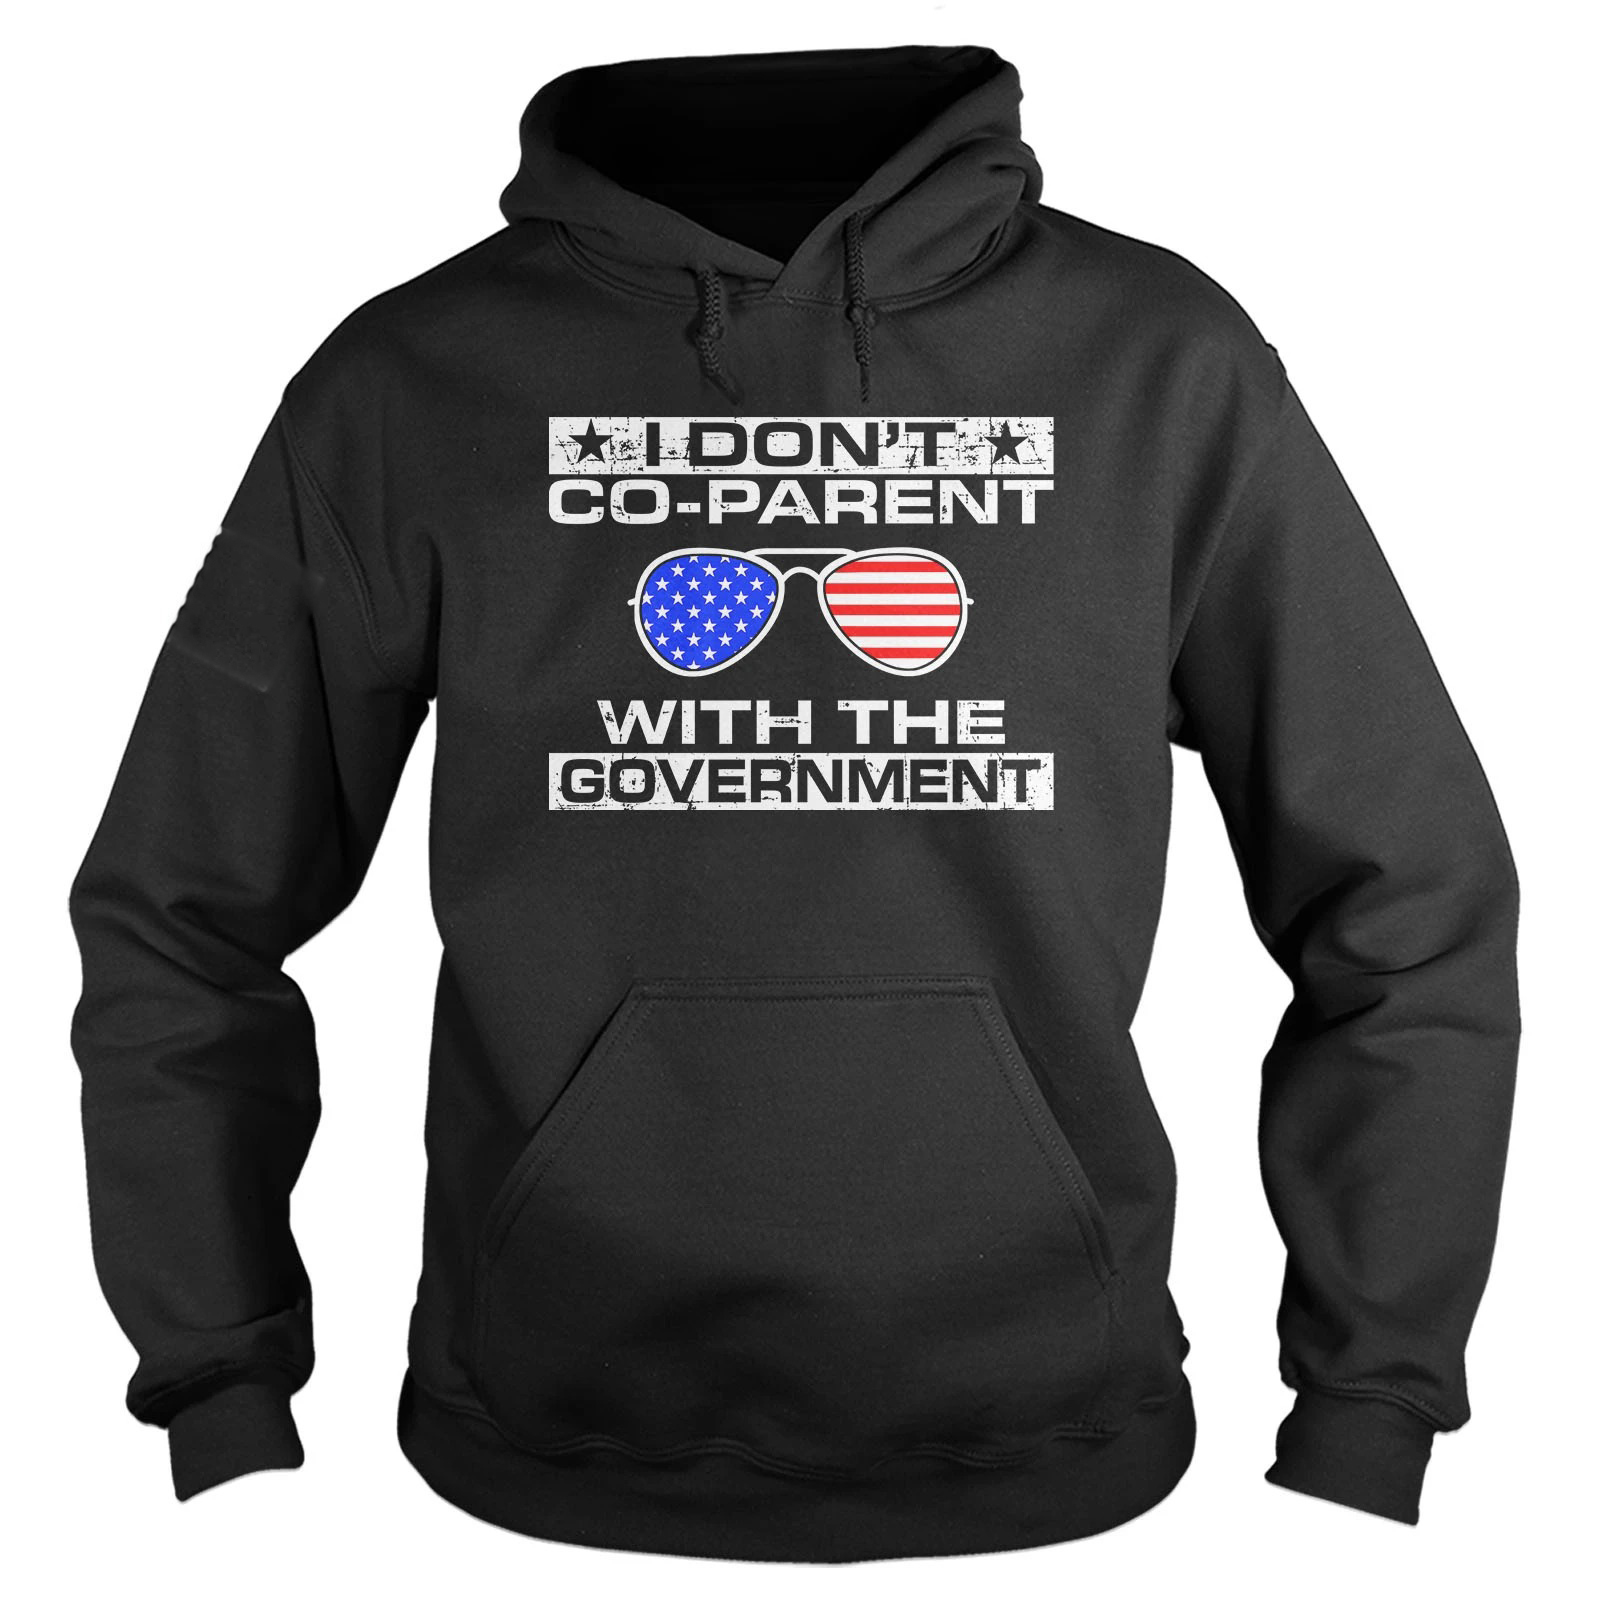 I don't co-parent with the government hoodie